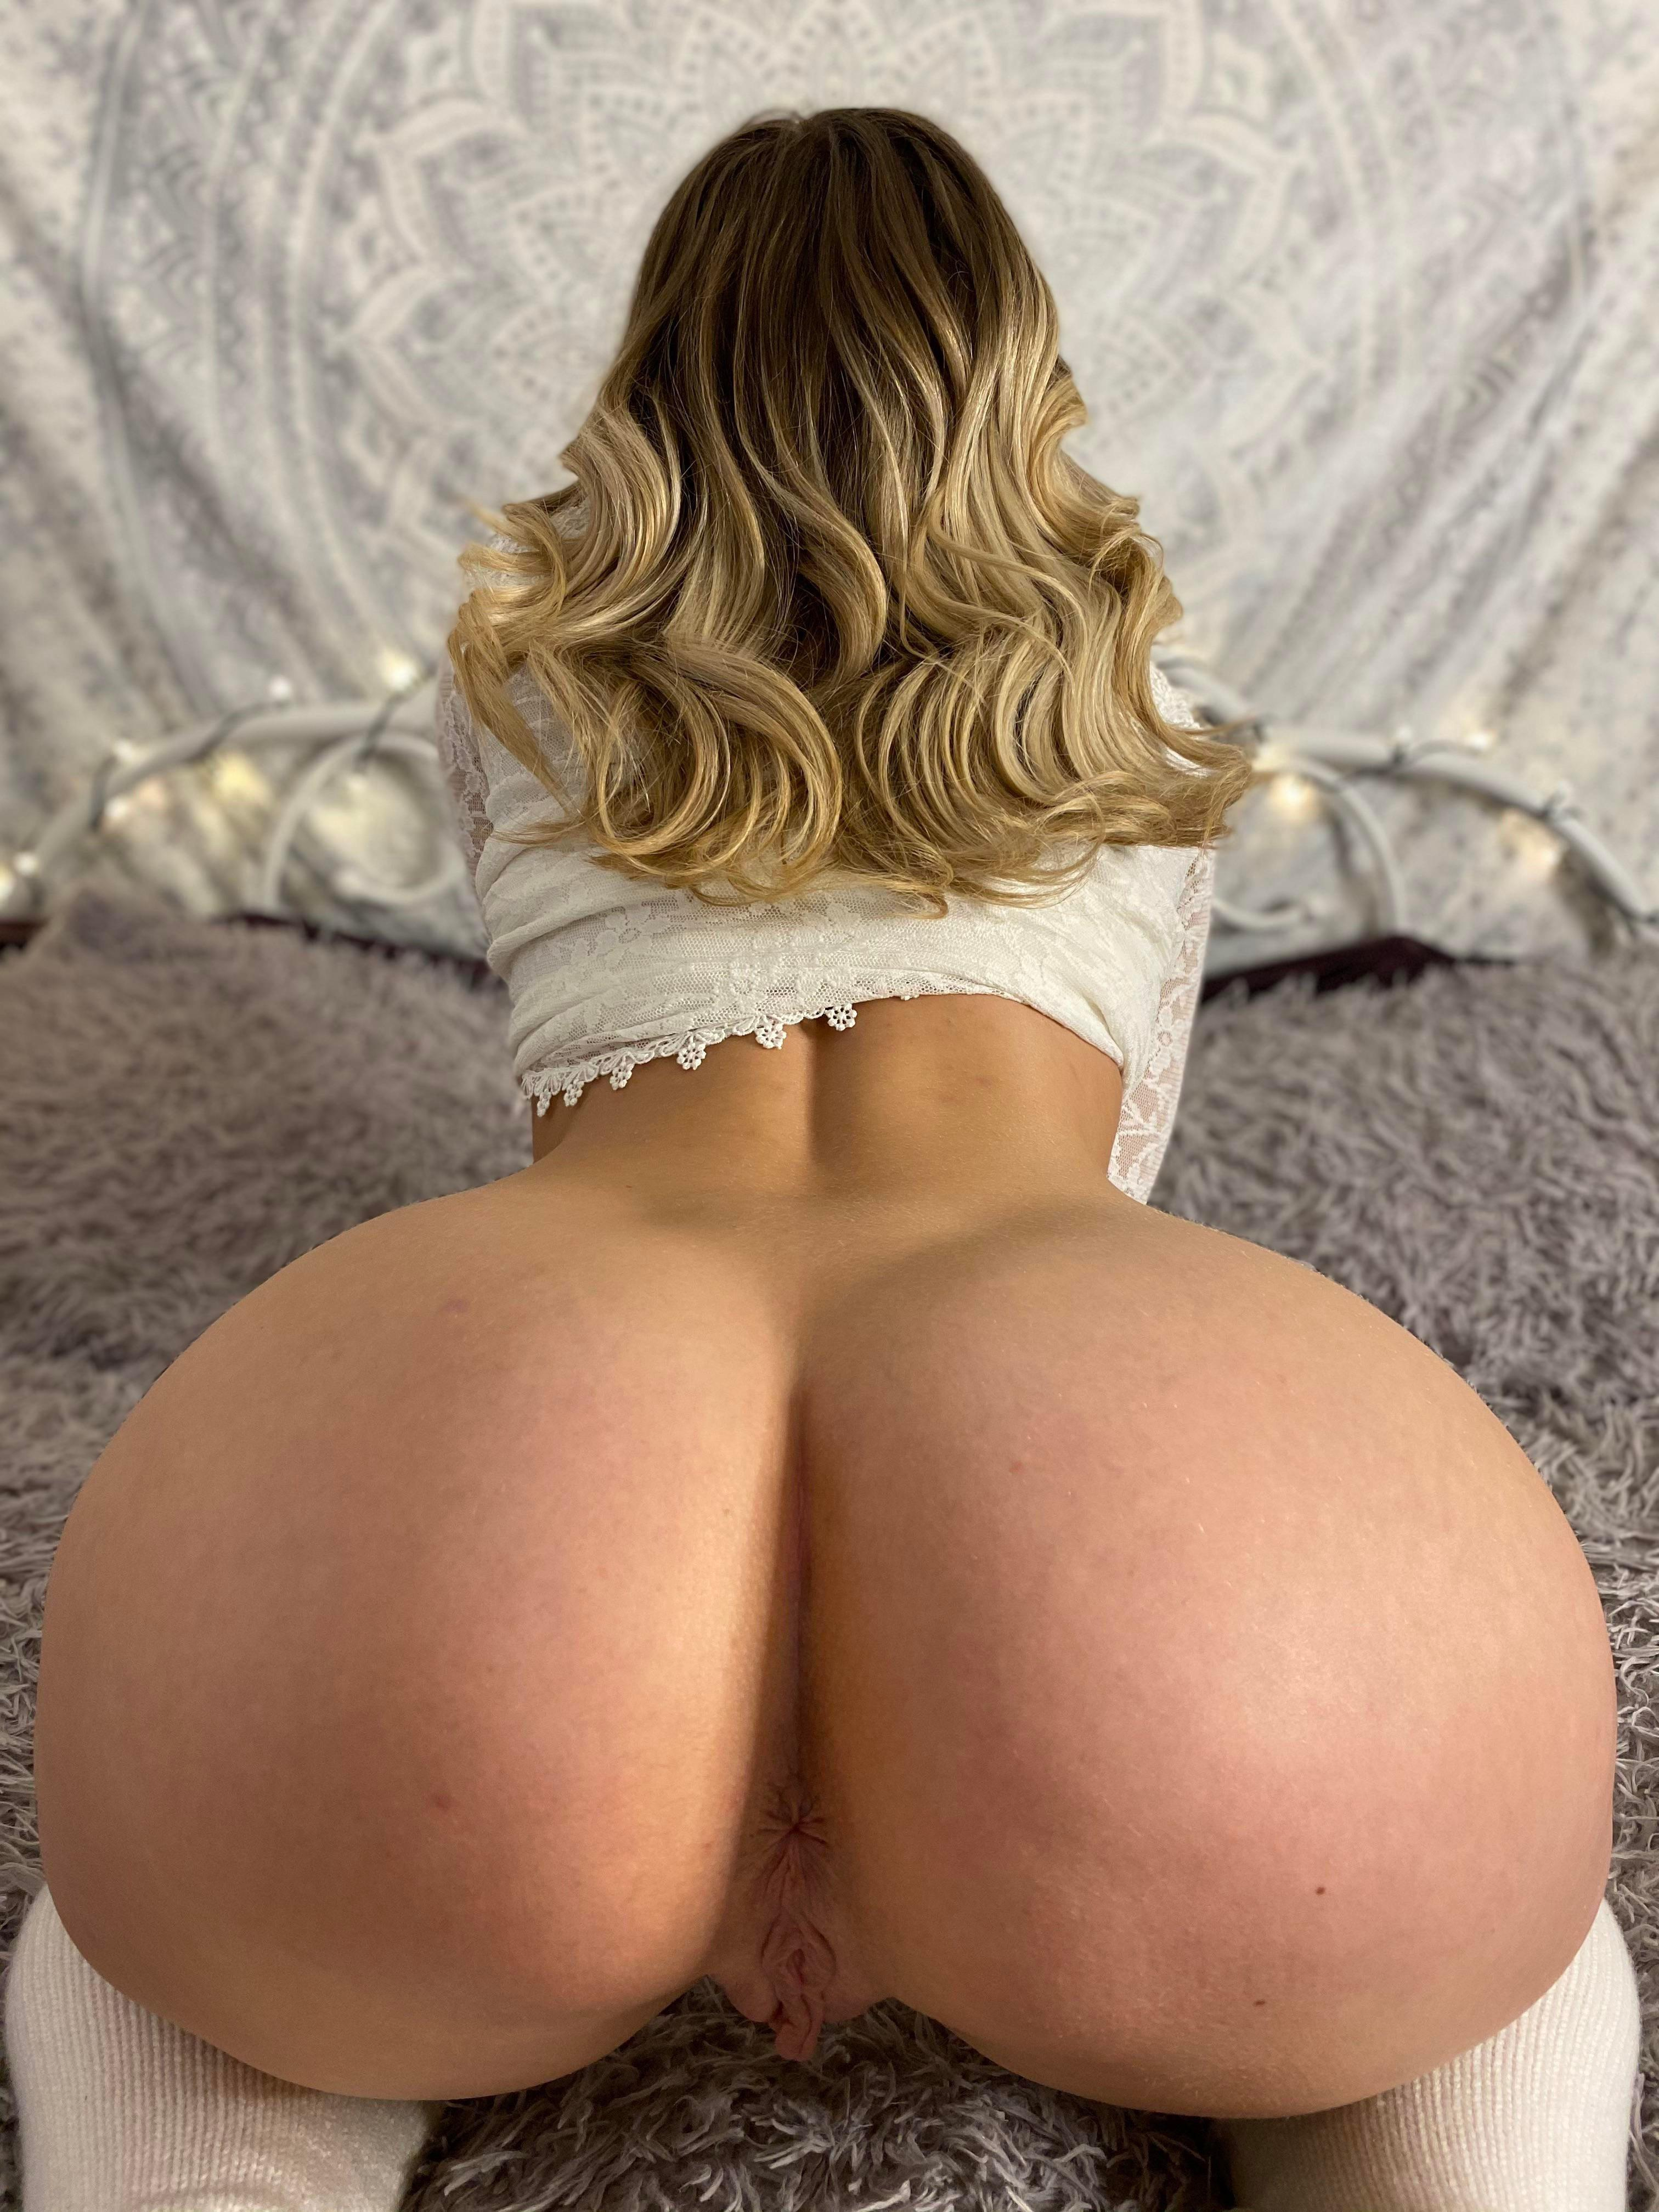 Pics pawg Pawg